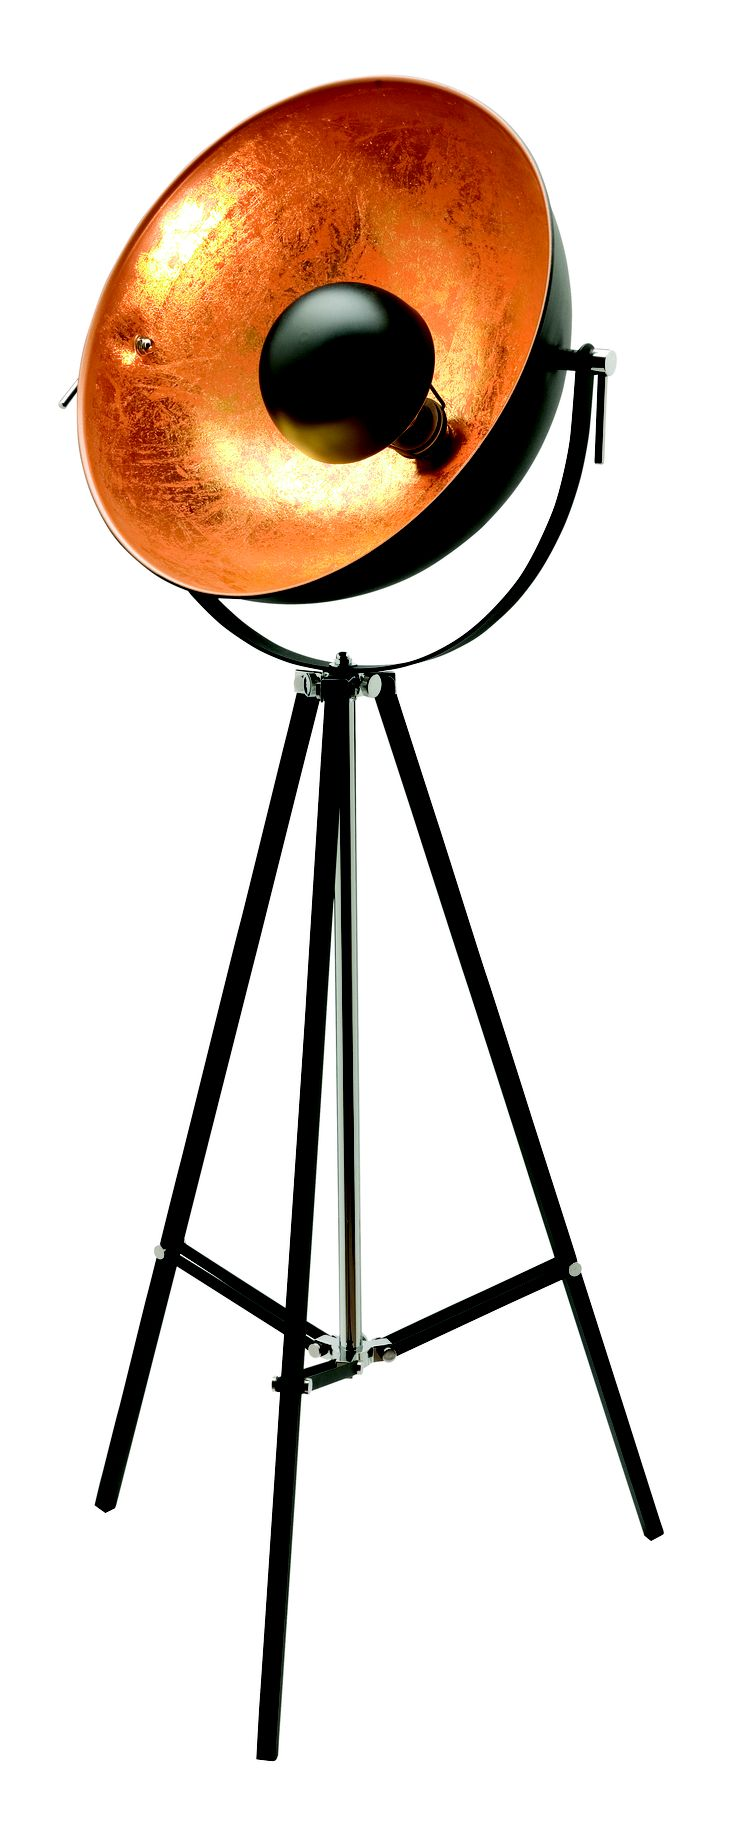 Looking to make a statement? The Coda architectural tripod floor lamp is available in Satin Chrome and Bronze, and will complete any modern or industrial space.